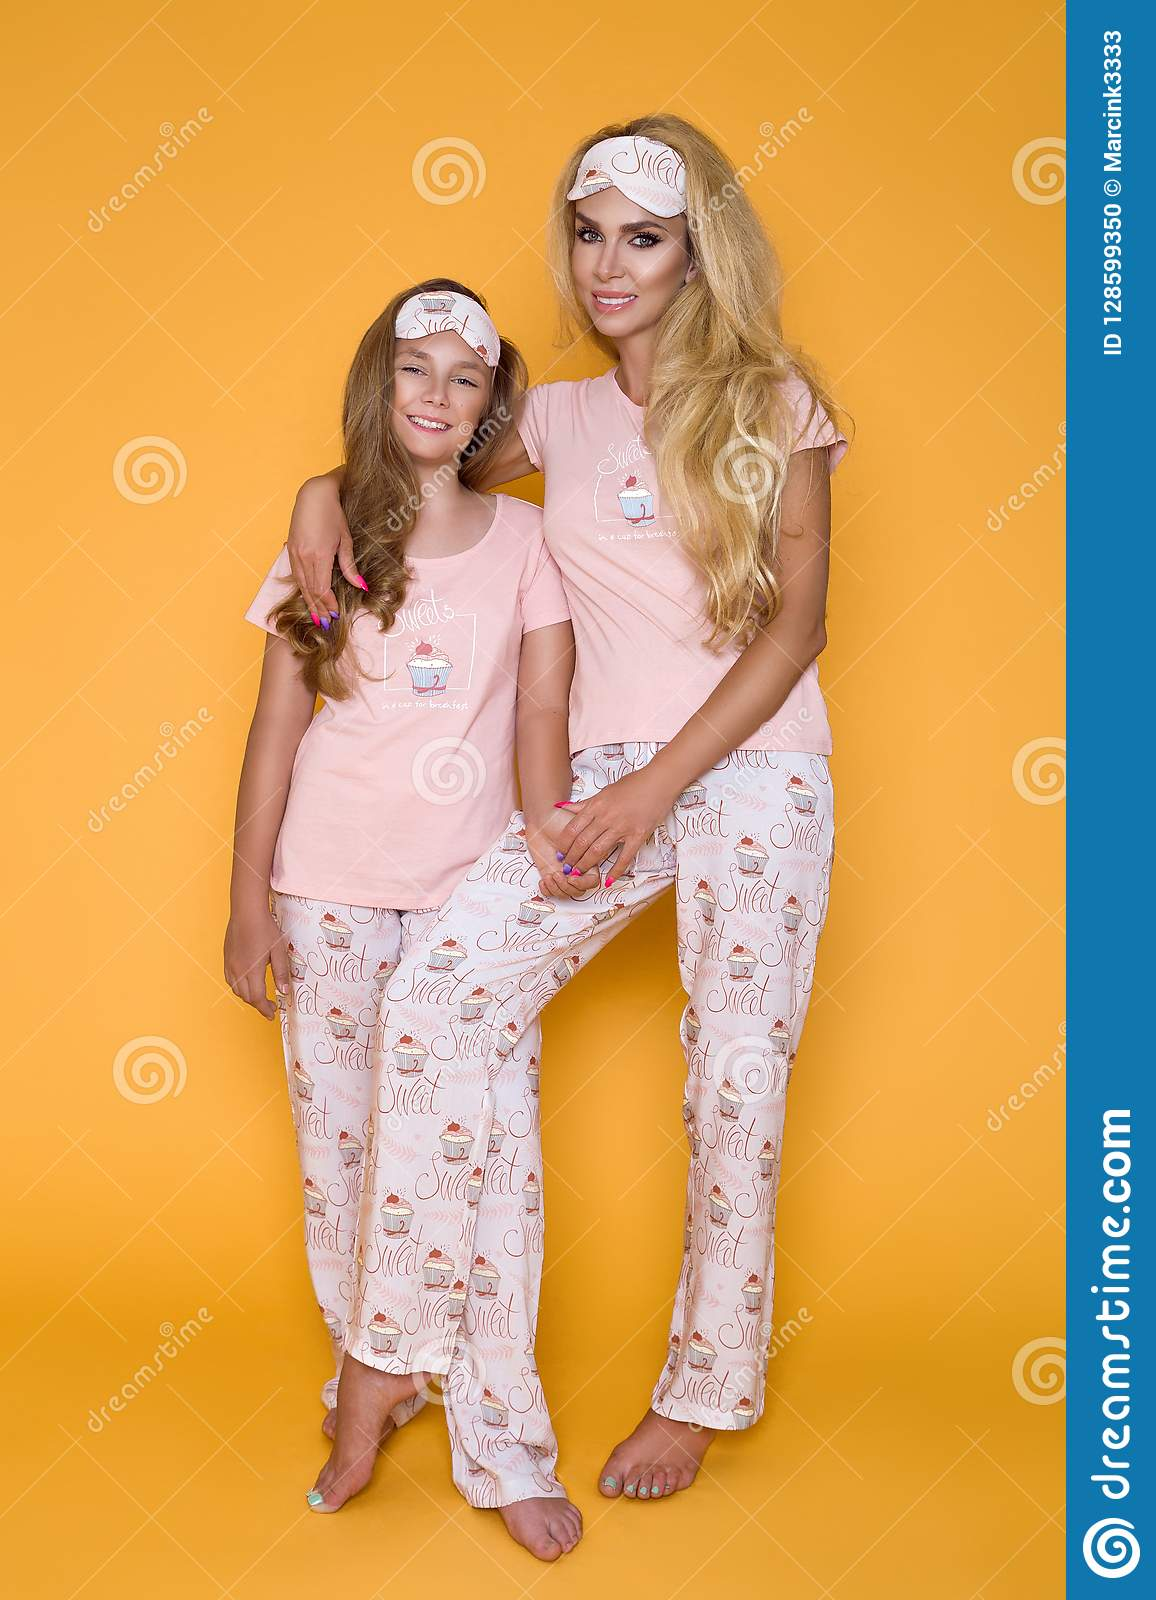 Beautiful blond girls, mother with daughter in pajamas on a yellow background in the studio.